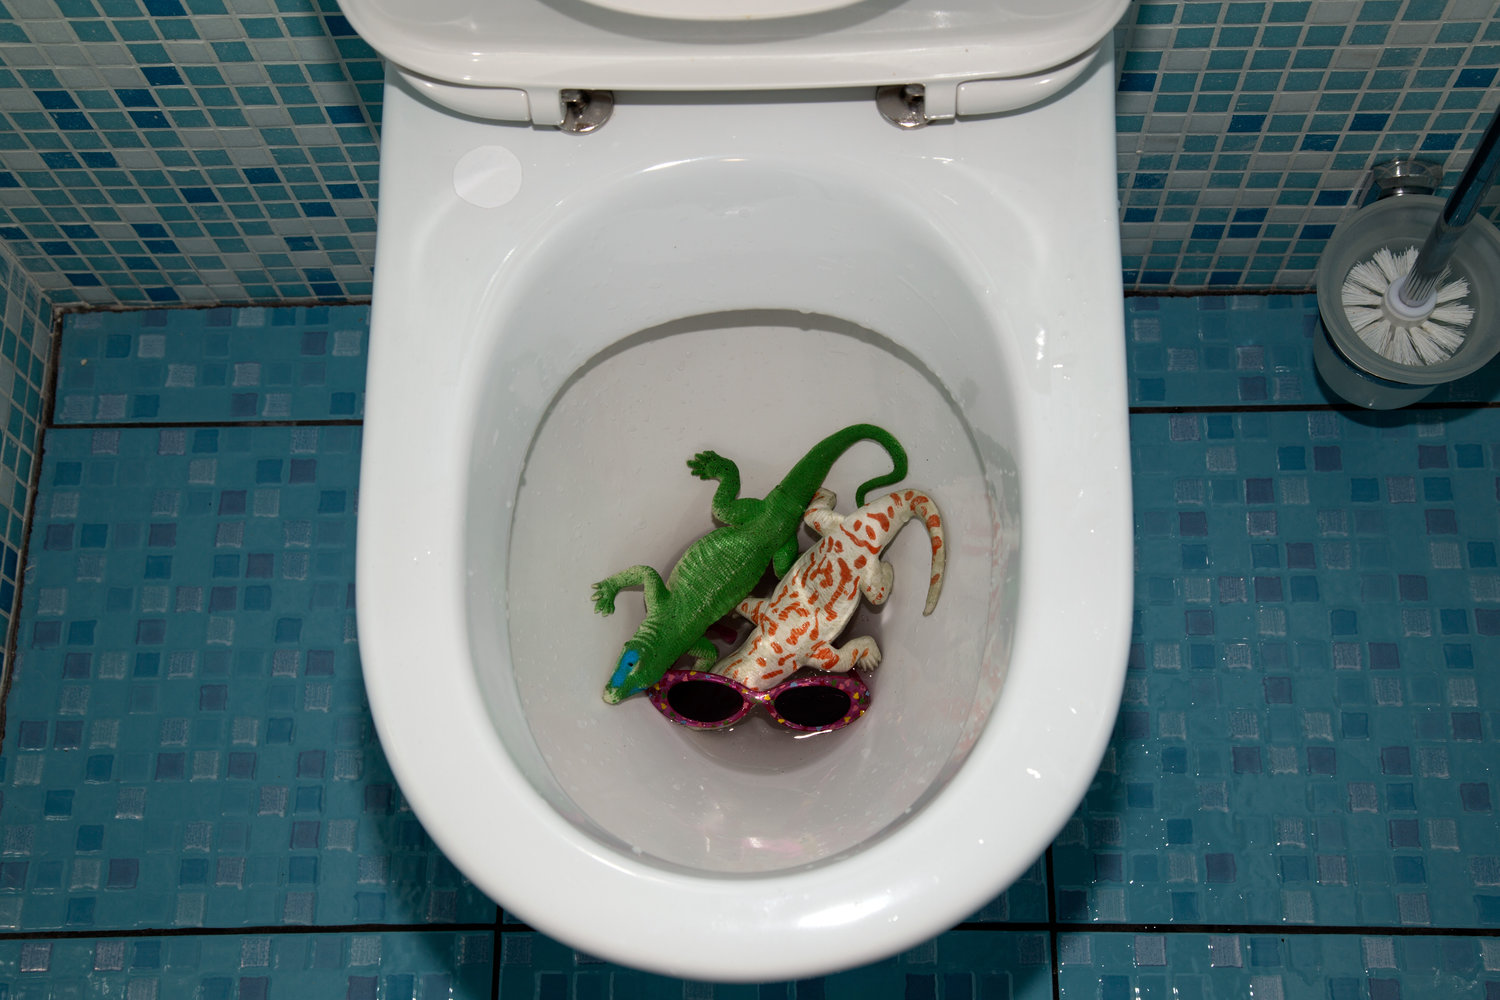 dropped in the toilet